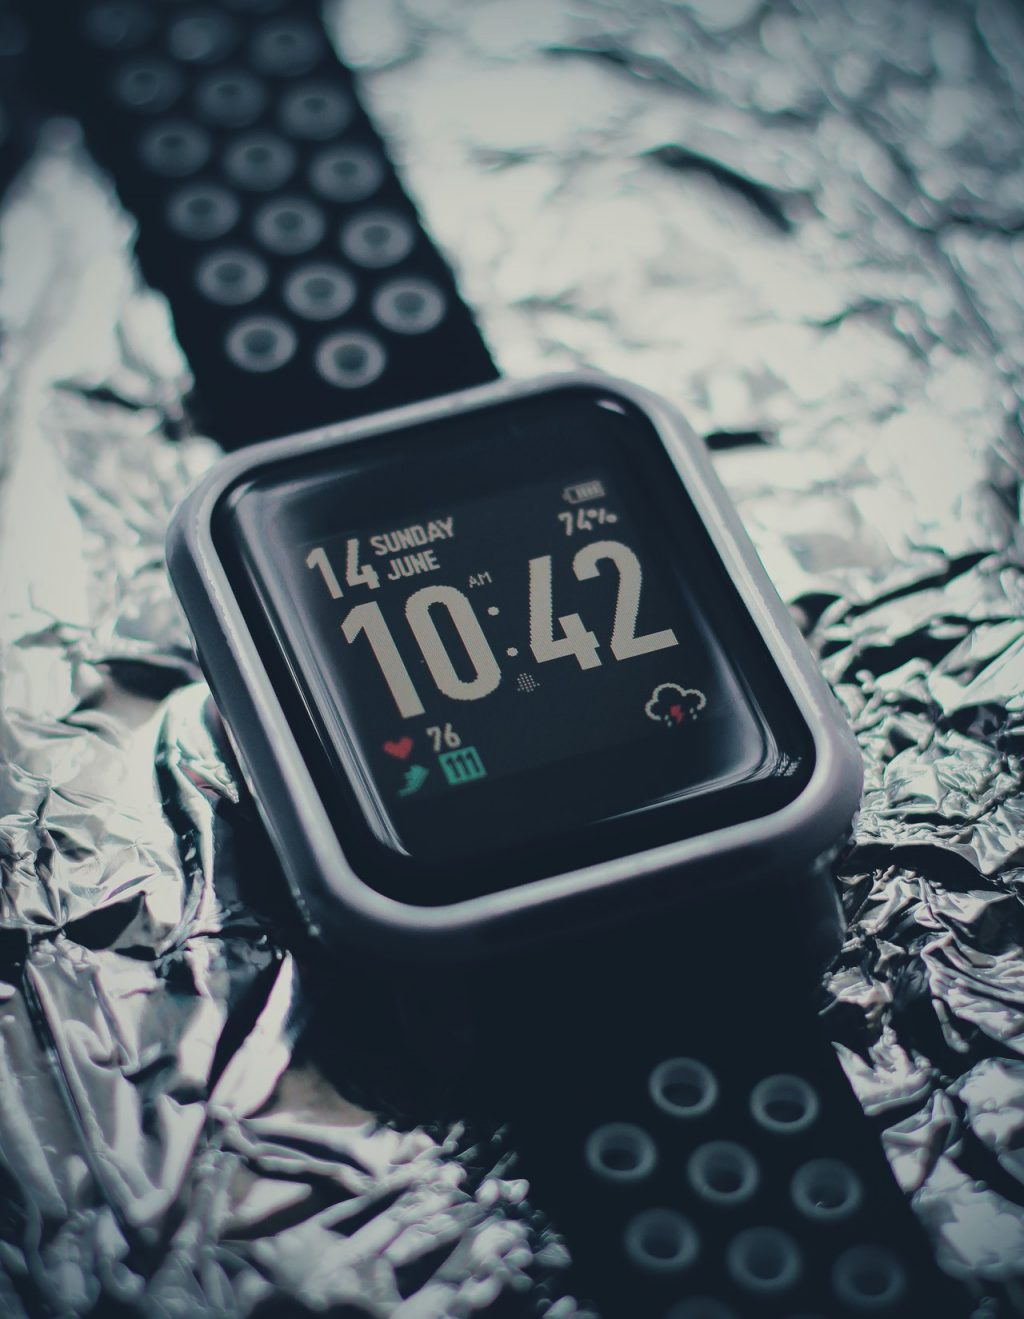 black-and-silver-apple-watch-4672162 (1)